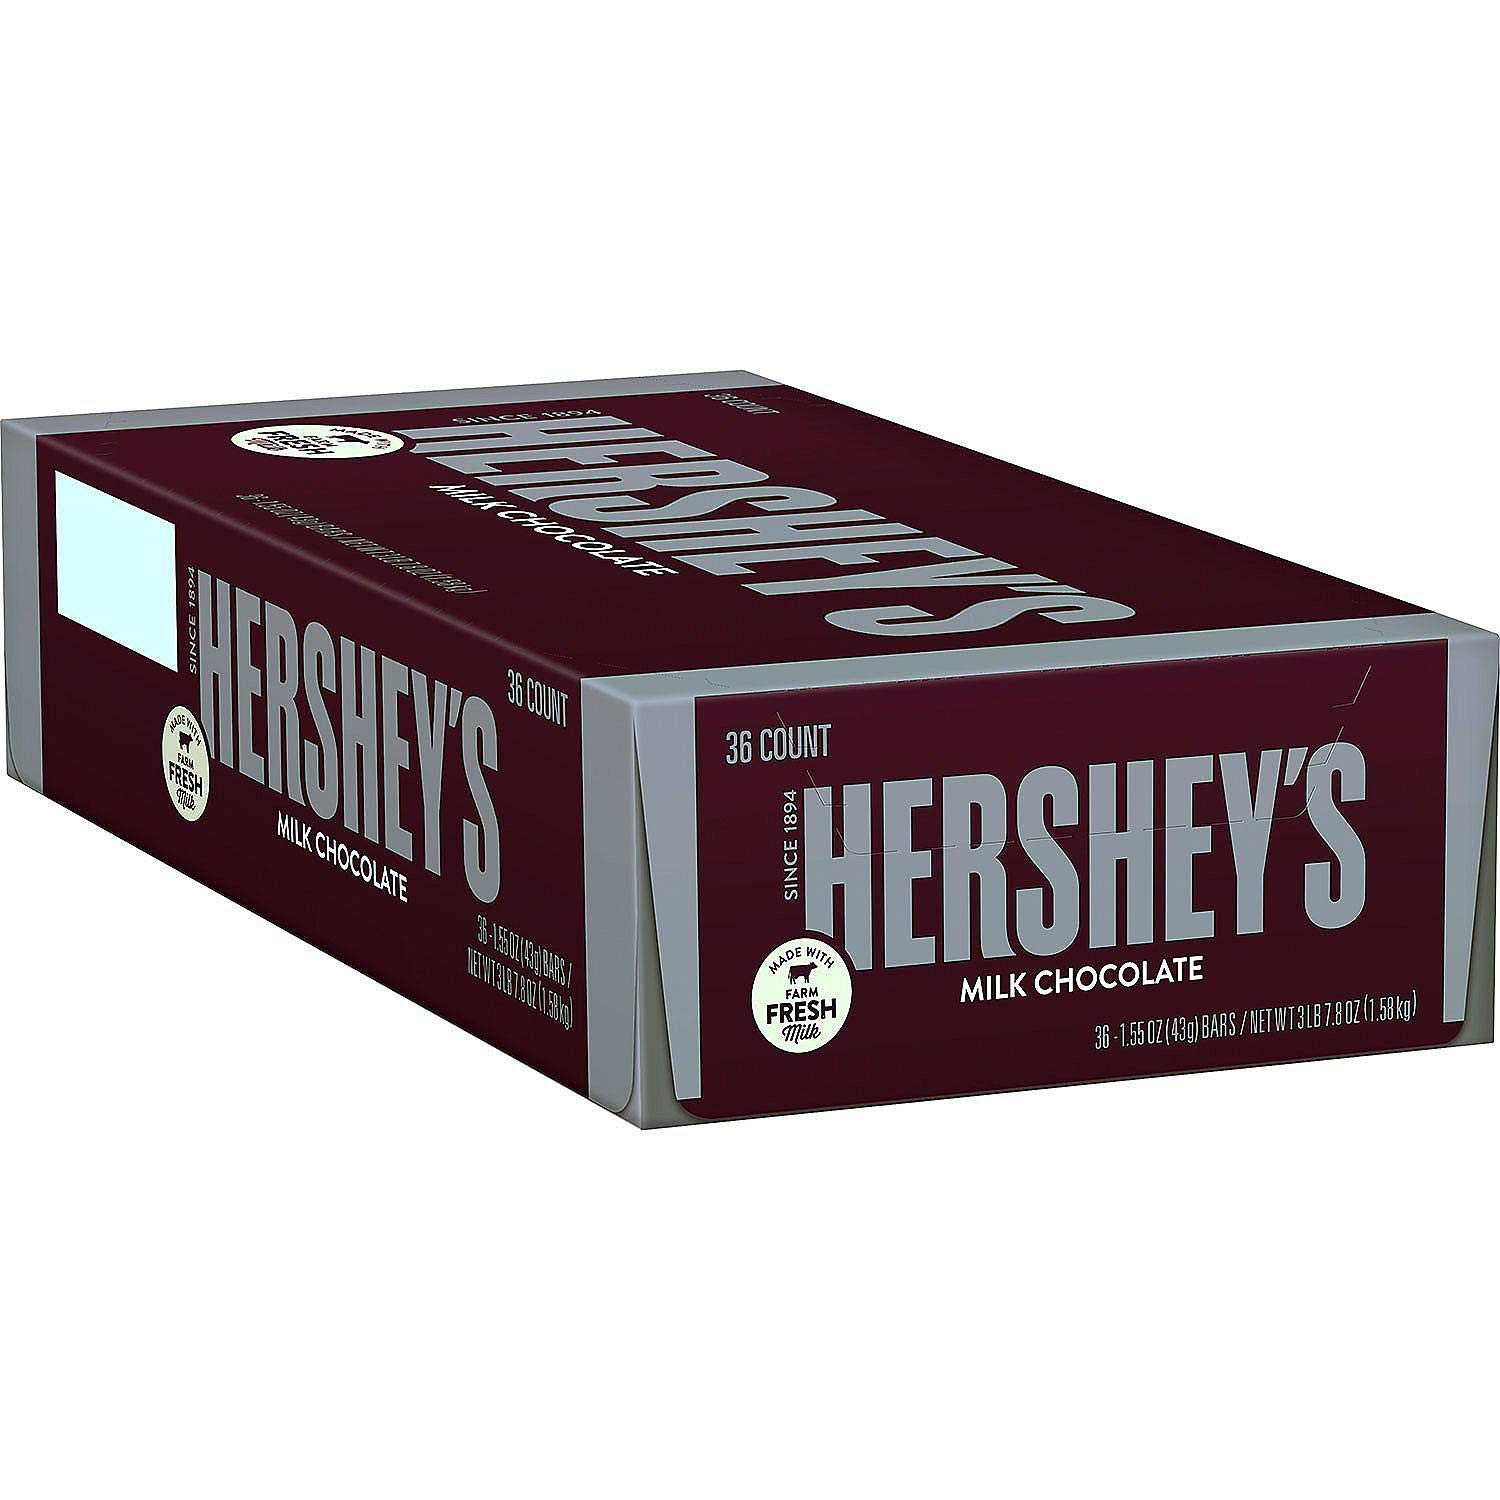 Milk Chocolate Candy Bars, 1.55-oz. Bars, 36 Count (2 Pack)